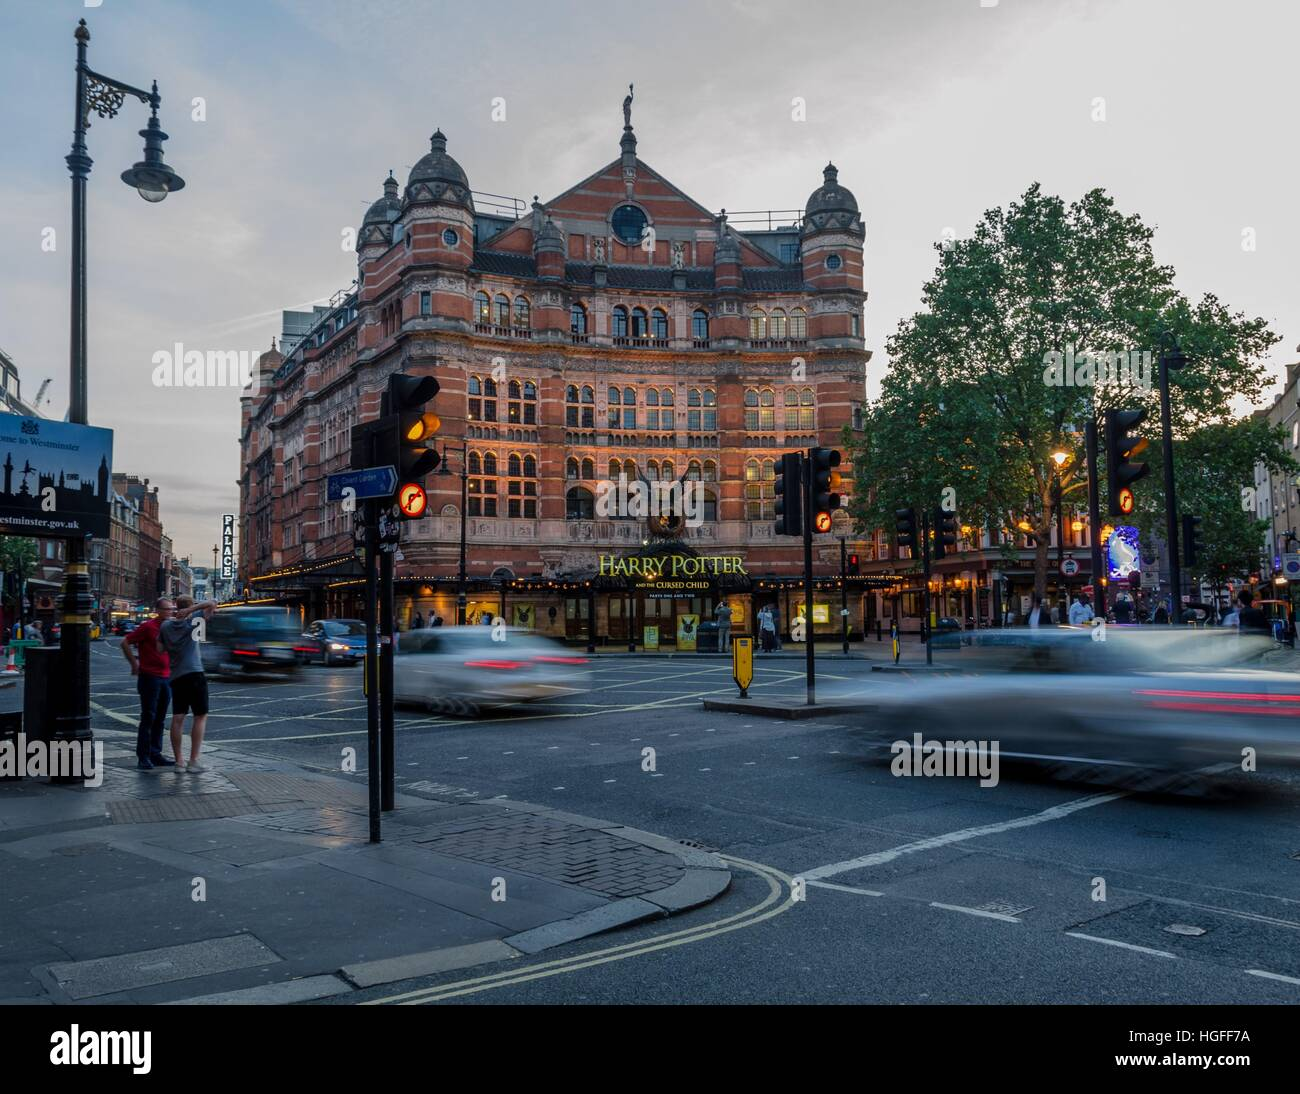 The Palace Theatre, Shaftesbury Avenue, London - Stock Image